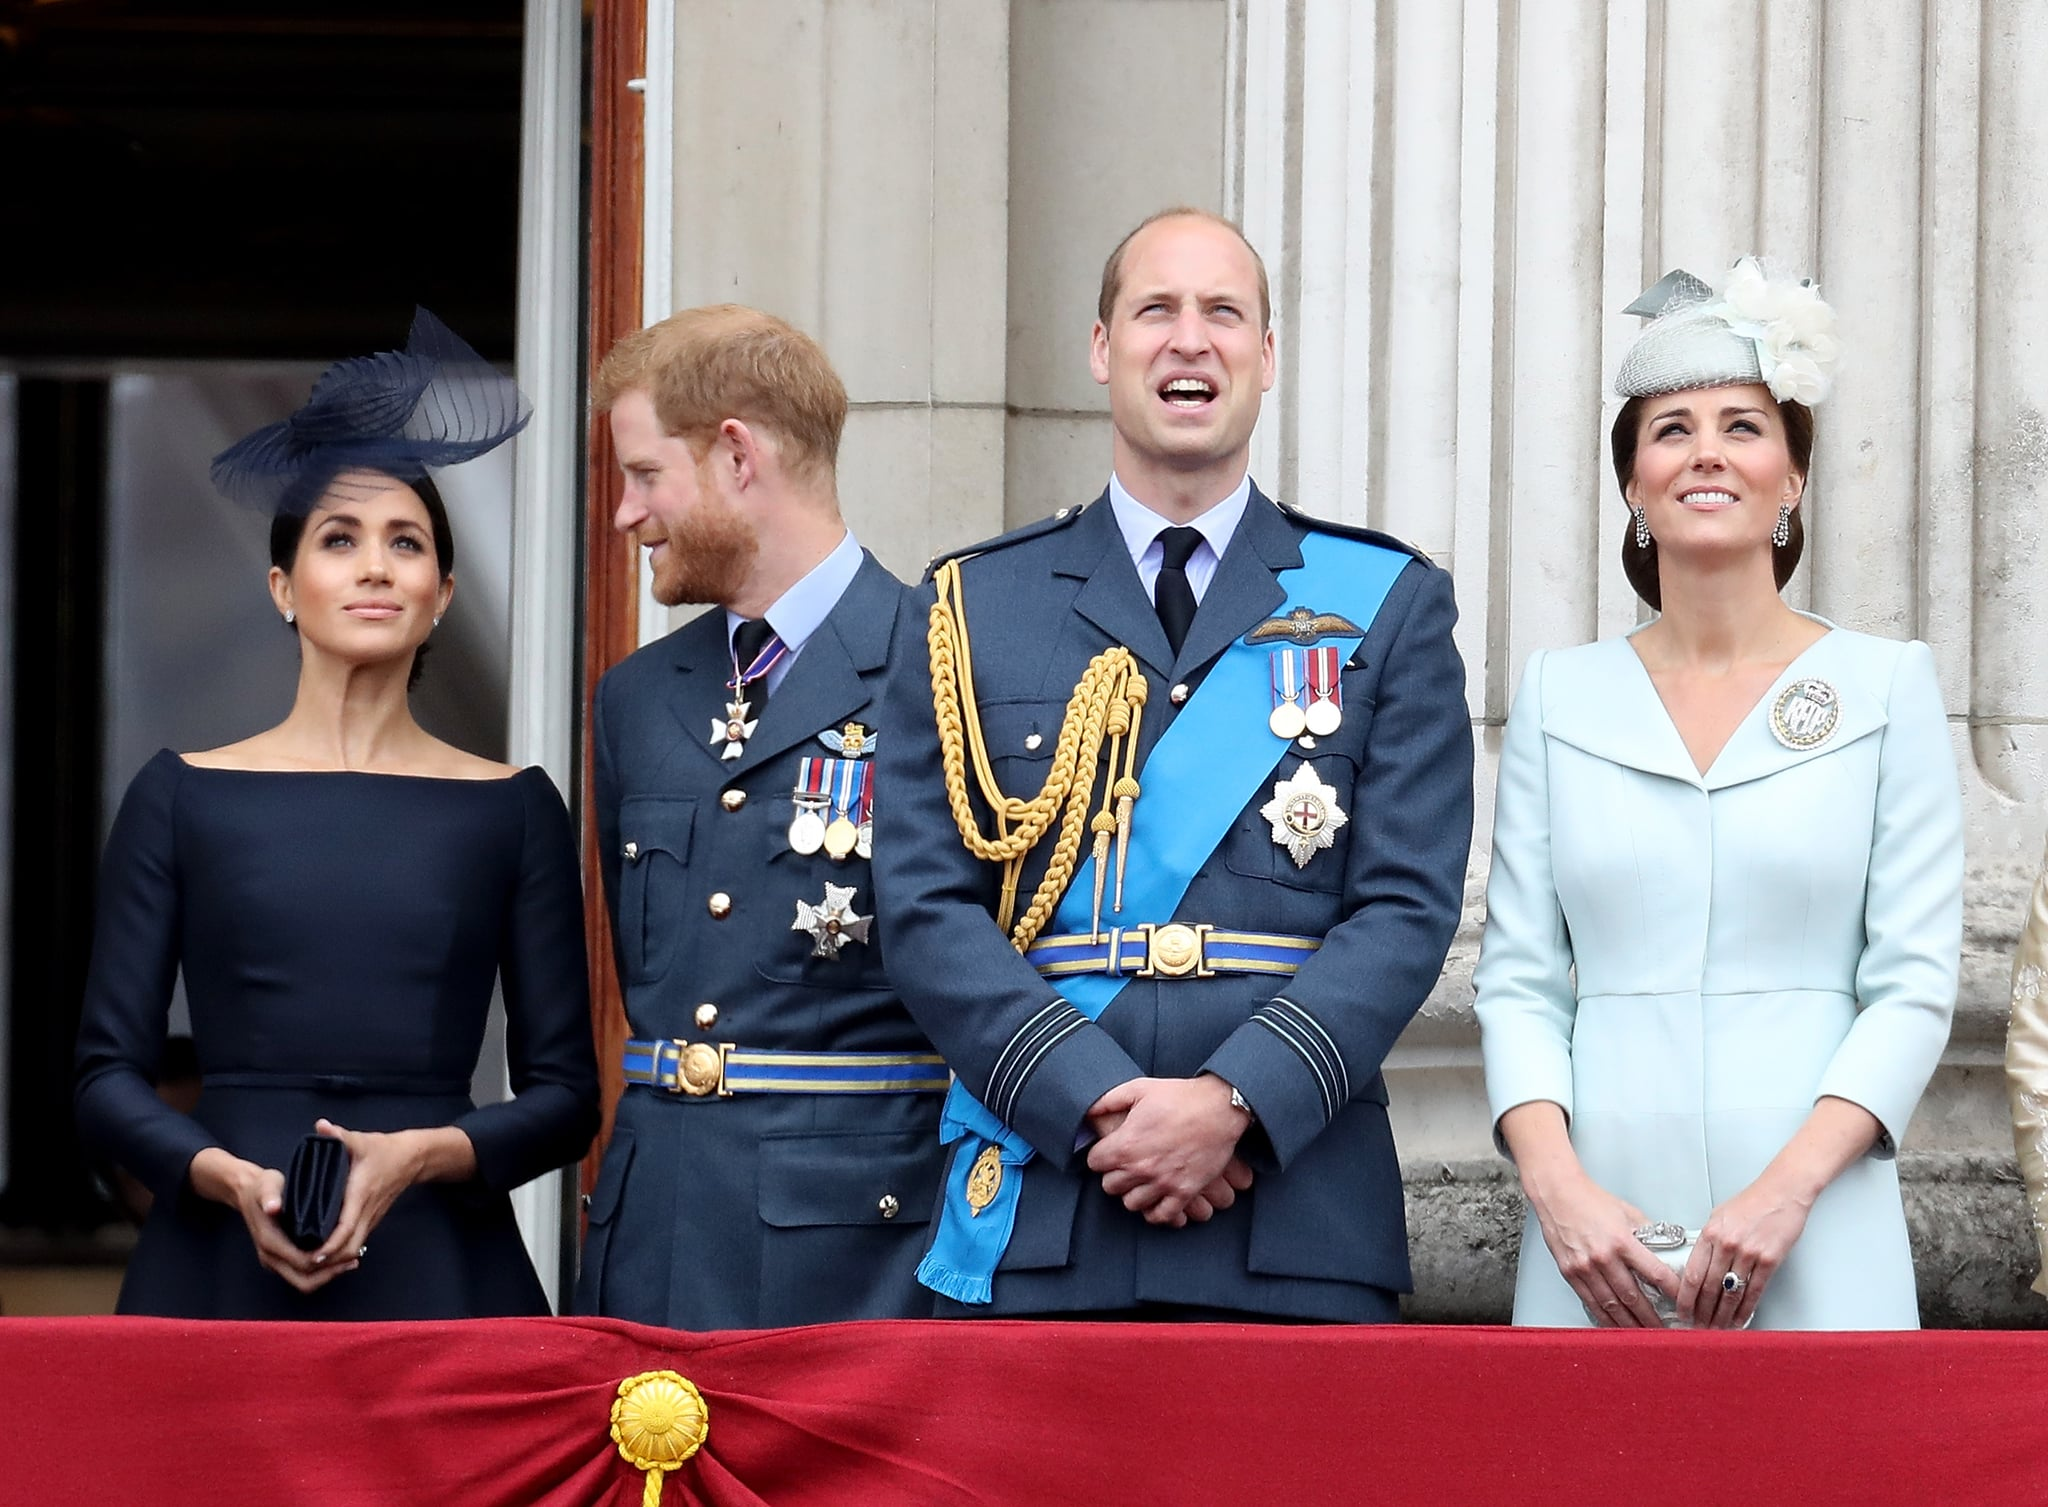 LONDON, ENGLAND - JULY 10:  (L-R) Meghan, Duchess of Sussex, Prince Harry, Duke of Sussex, Prince William, Duke of Cambridge and Catherine, Duchess of Cambridge watch the RAF flypast on the balcony of Buckingham Palace, as members of the Royal Family attend events to mark the centenary of the RAF on July 10, 2018 in London, England.  (Photo by Chris Jackson/Chris Jackson/Getty Images)